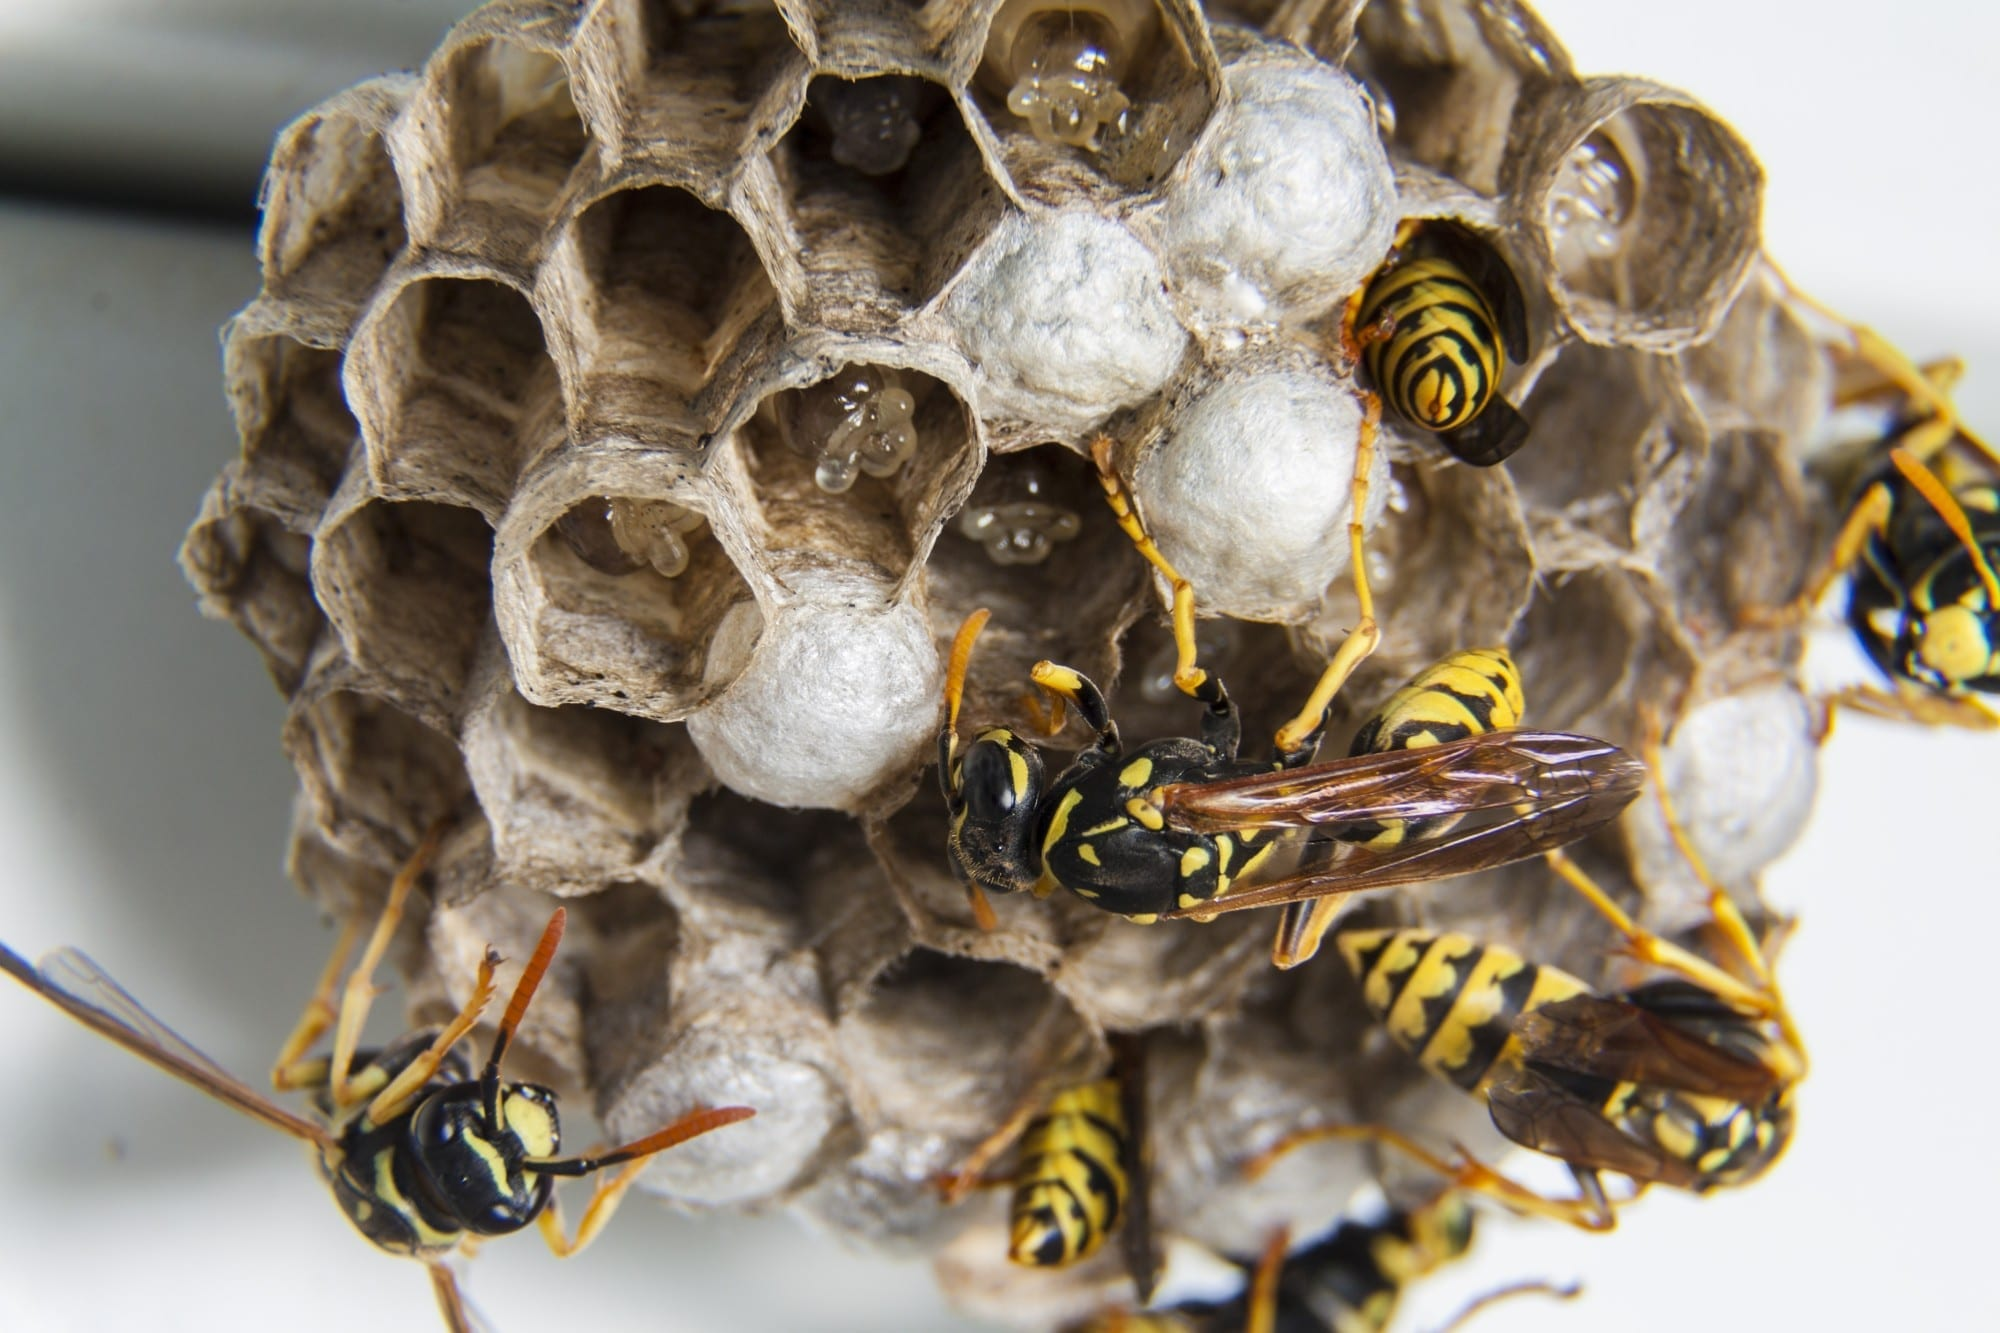 what attracts wasps